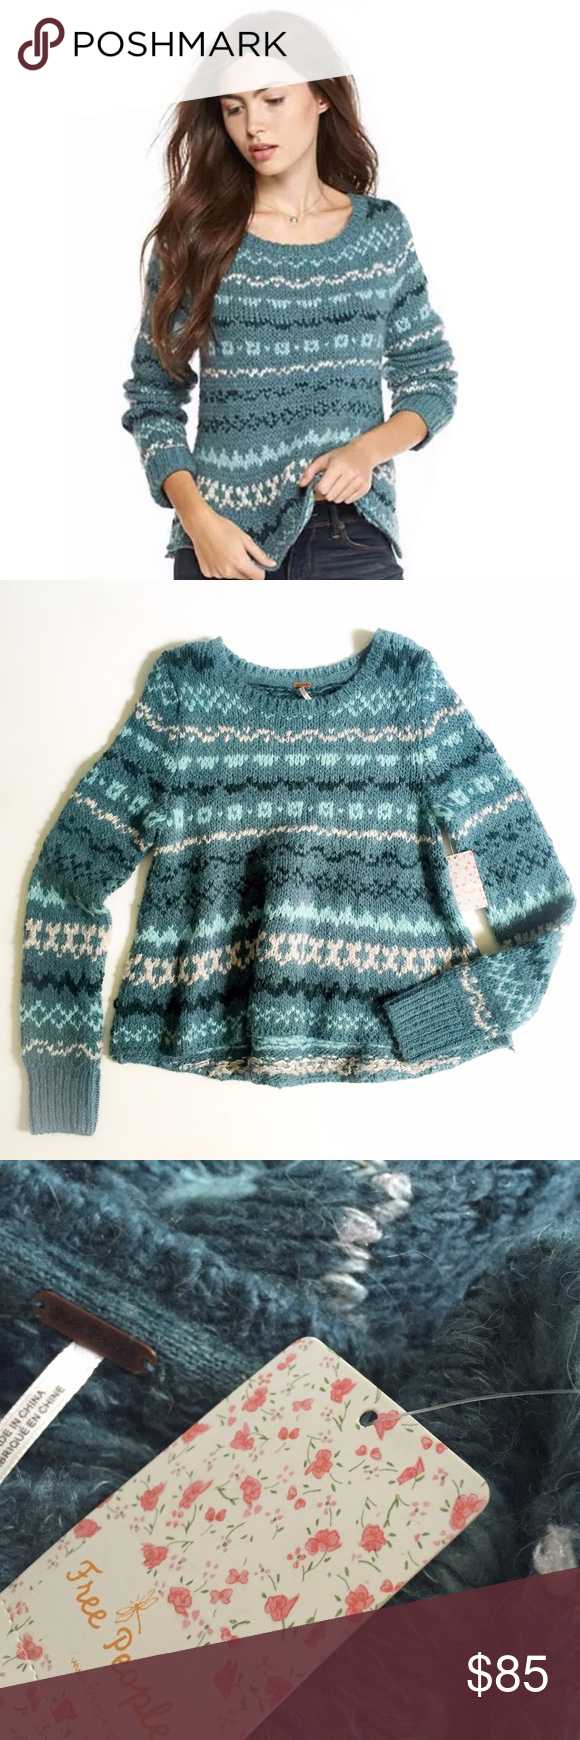 NWT Free People Sweater New With Tags Free People Winter Sweater Free People Sweaters